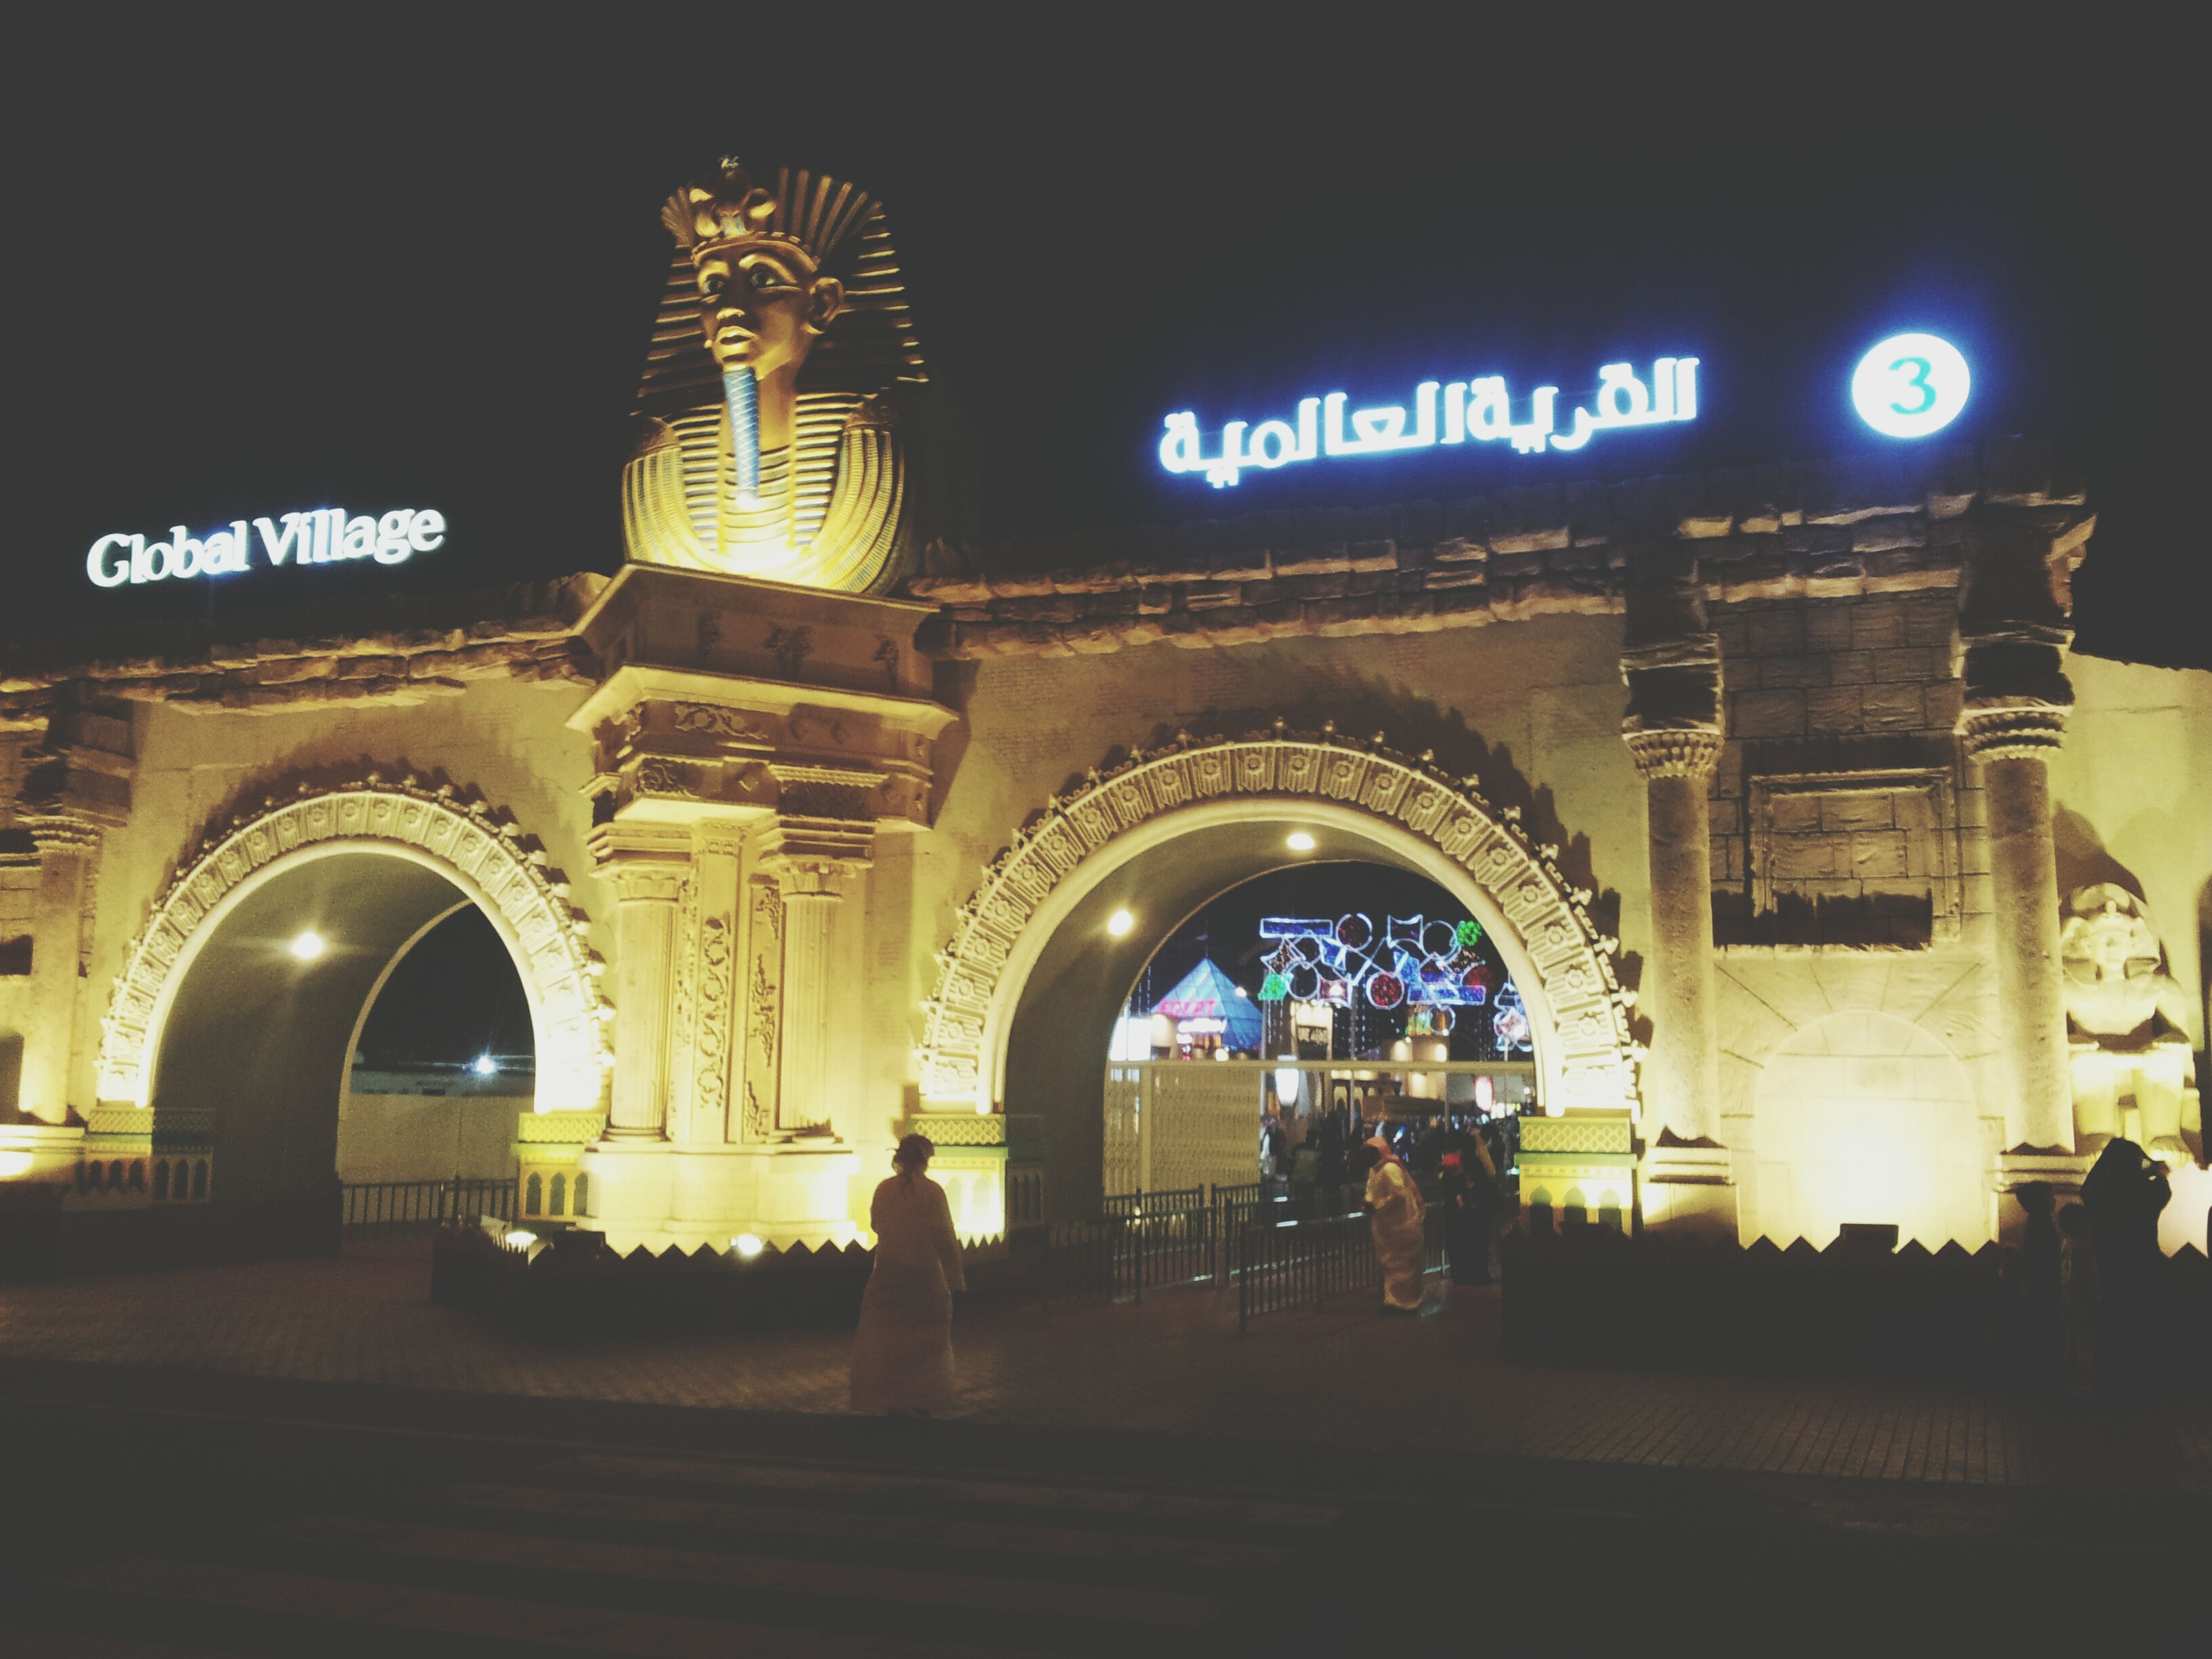 arch, architecture, night, illuminated, text, built structure, men, building exterior, western script, lifestyles, transportation, communication, person, walking, travel, leisure activity, city life, clear sky, city